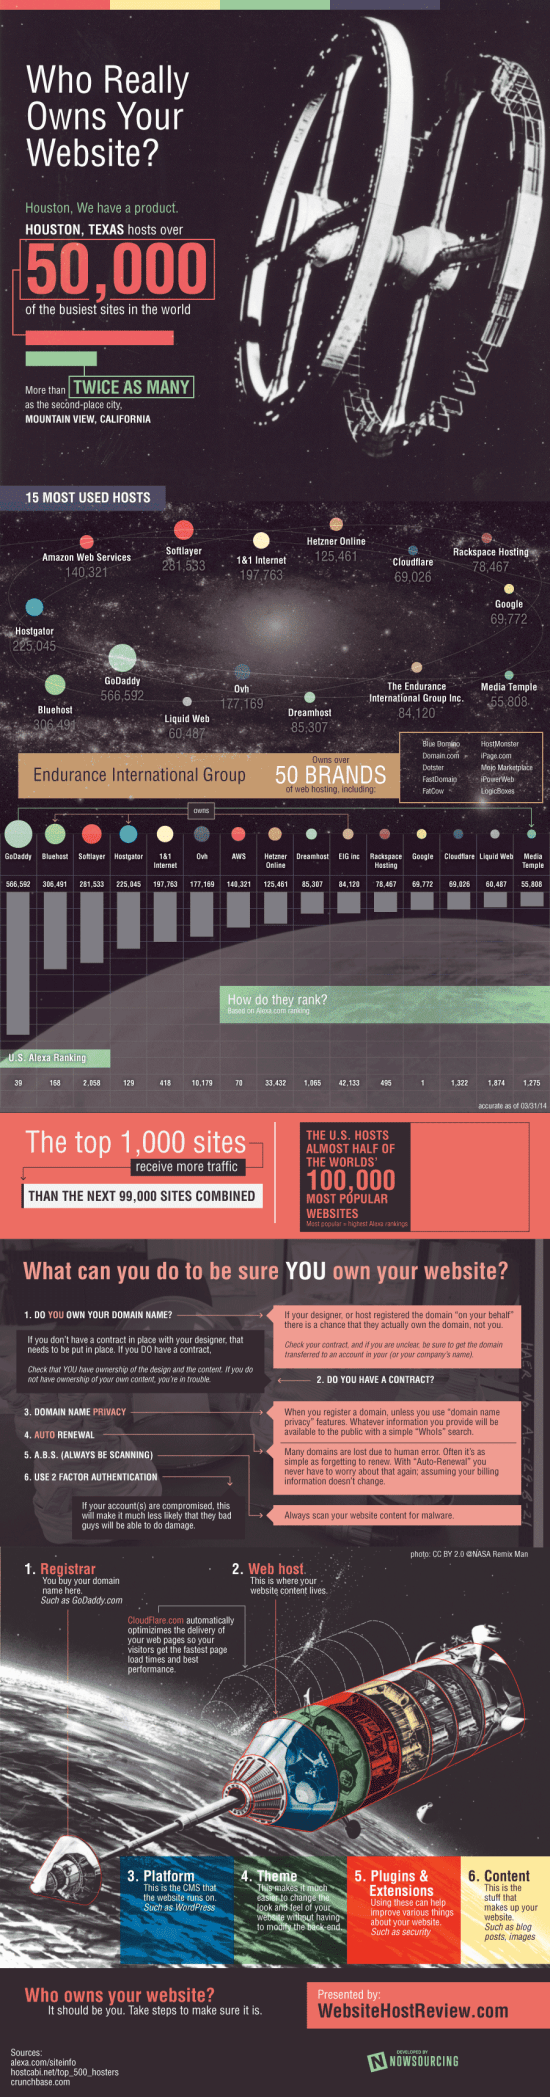 Who Owns Your Website